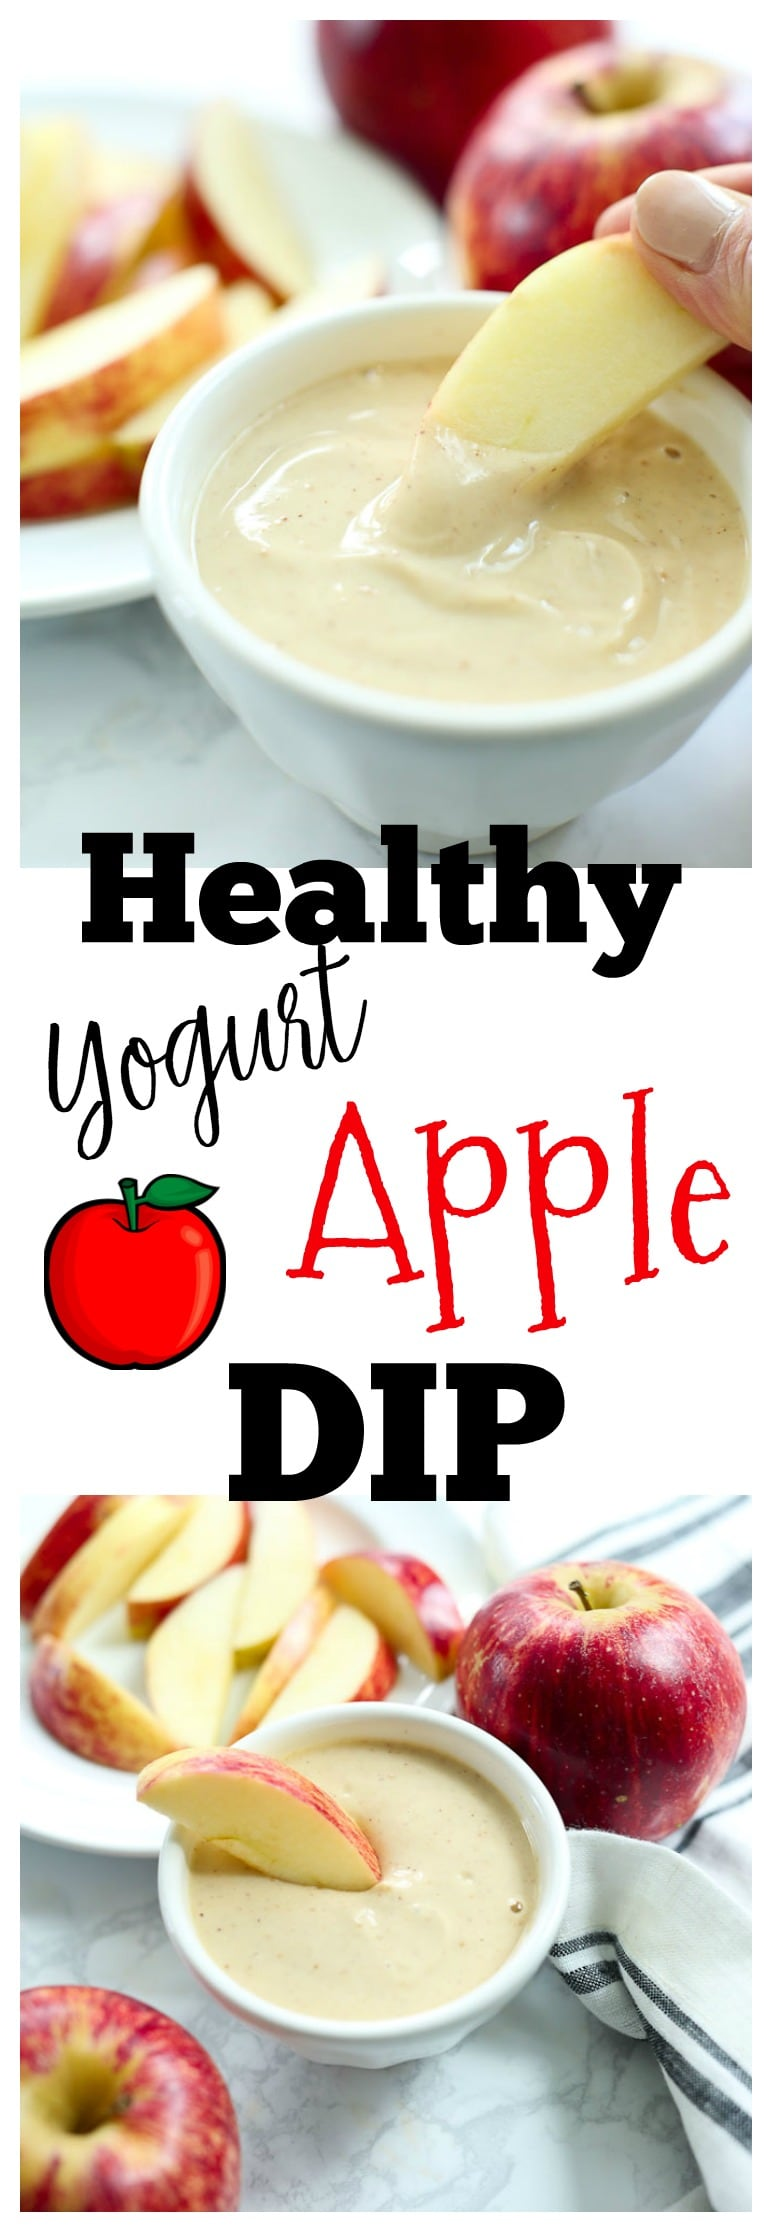 Healthy Yogurt Peanut Butter Apple Dip recipe--healthy after school snack recipe with no refined sugar and gluten-free